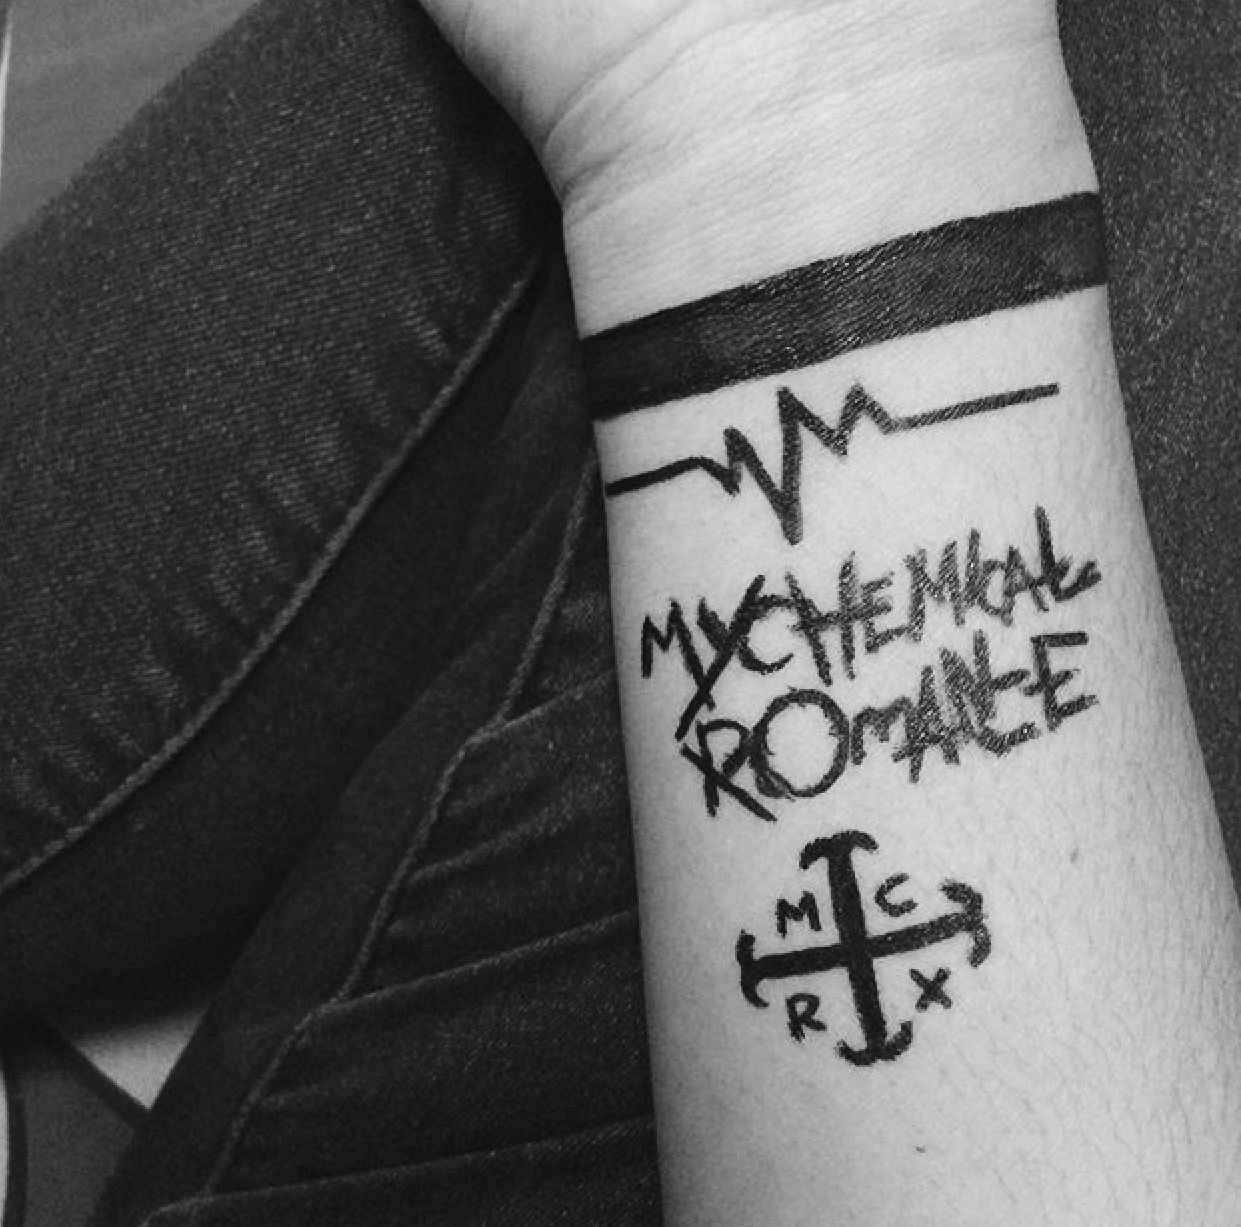 mcr tattoos for the different eras having a tattoo for each one would be awesome mcr. Black Bedroom Furniture Sets. Home Design Ideas